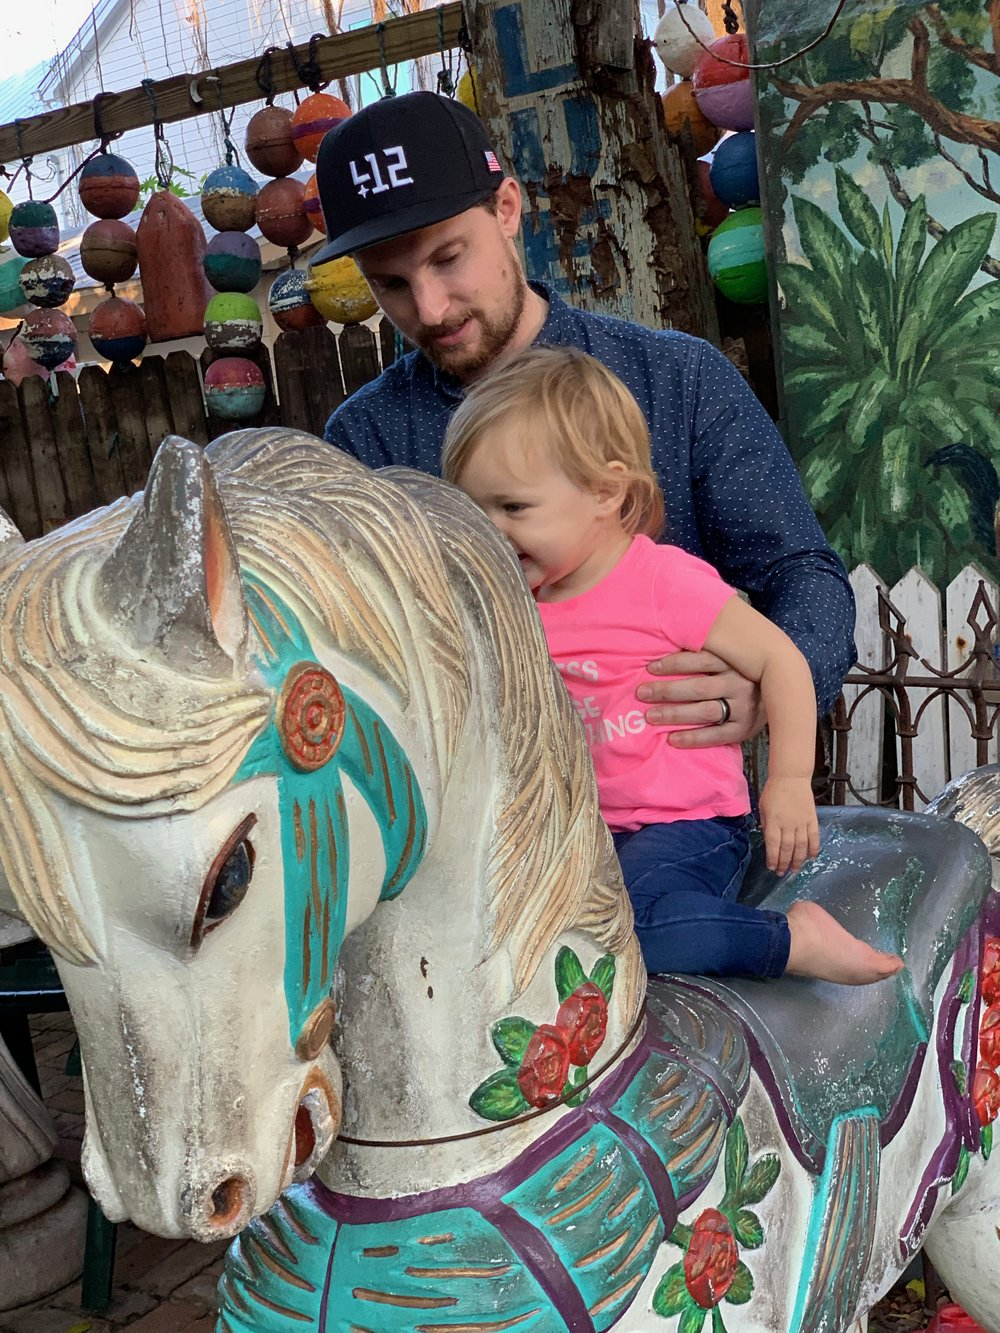 Family Friendly Key West | Traveling with a toddler | By Sarah Rae